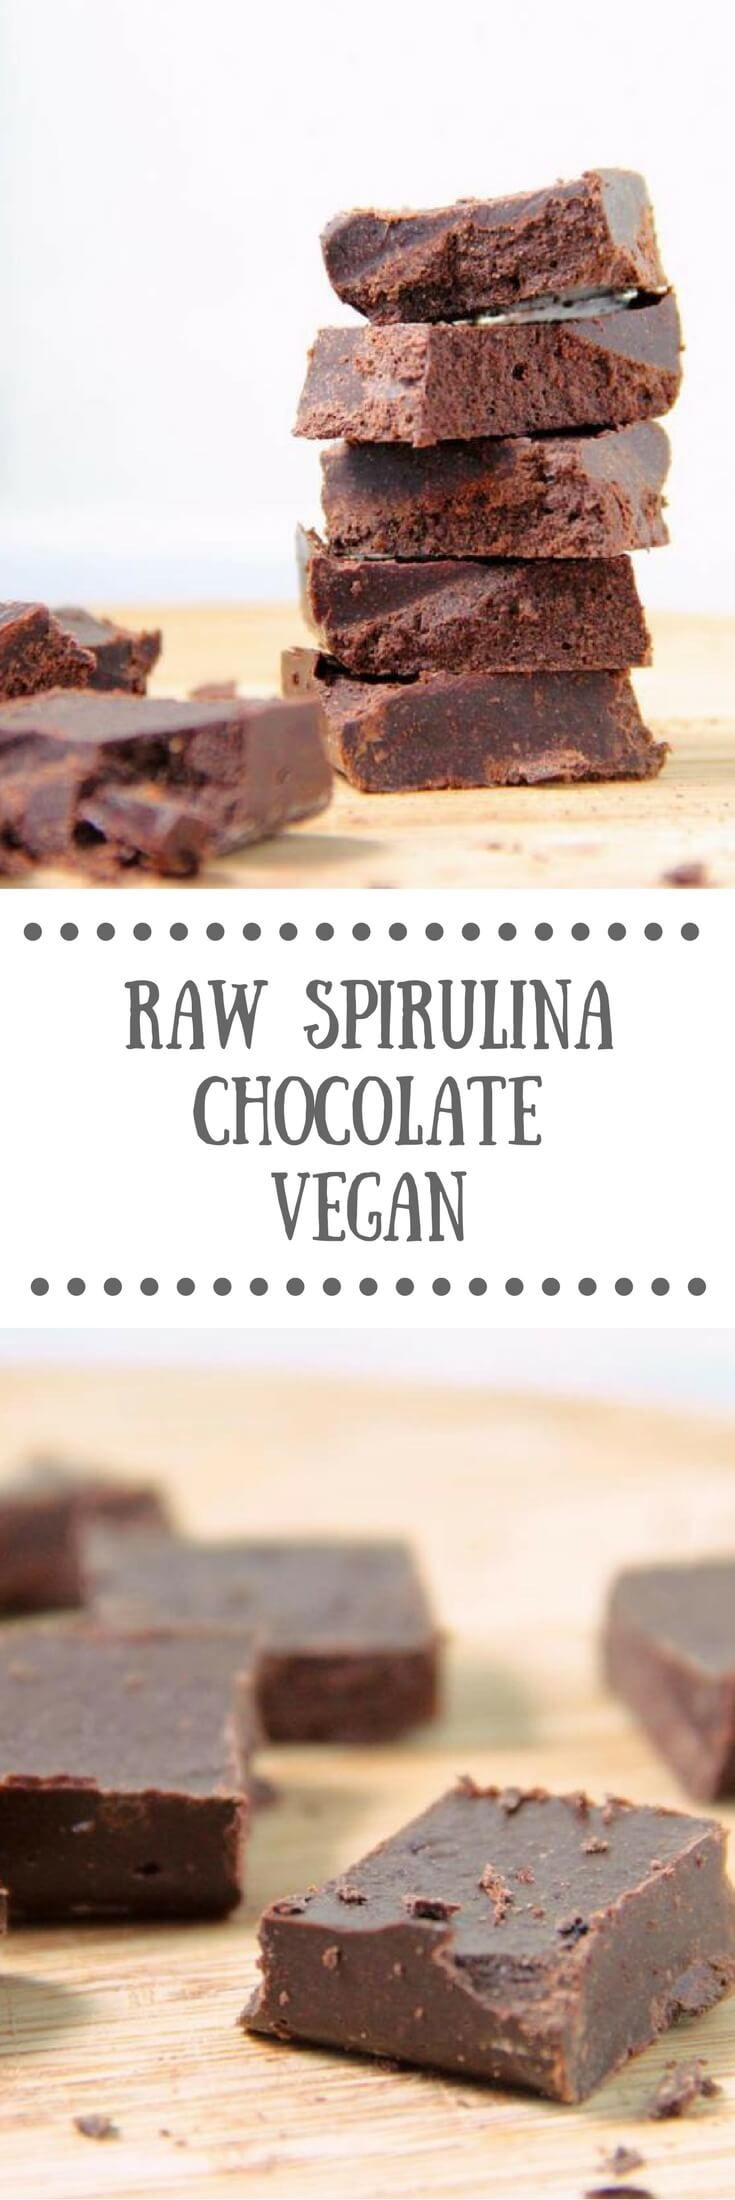 Raw Spirulina Chocolate | Vegan, dairy-free, gluten-free, easy to make treats!